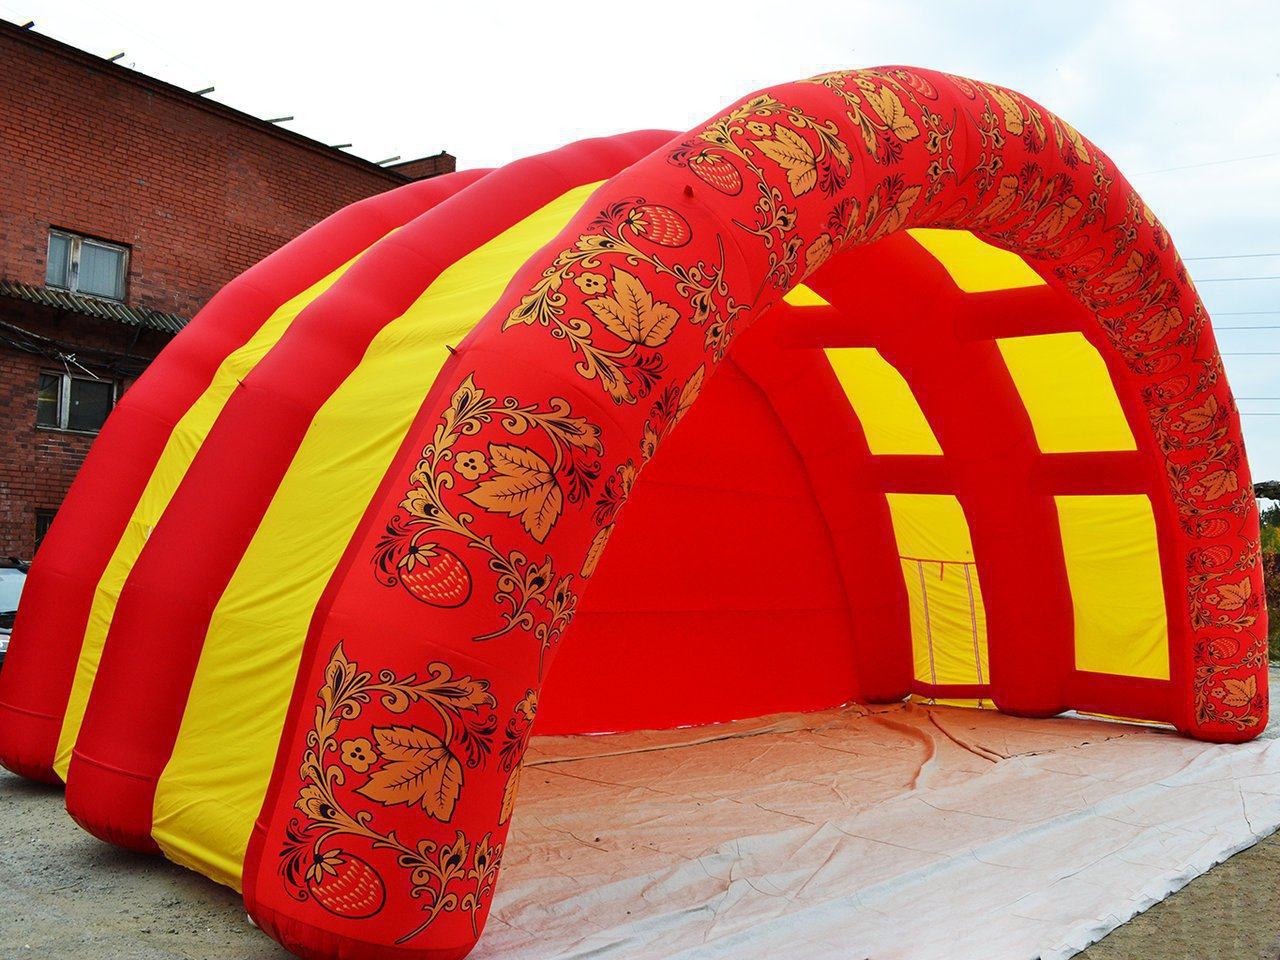 Large inflatable arched scene in the colors of Khokhloma